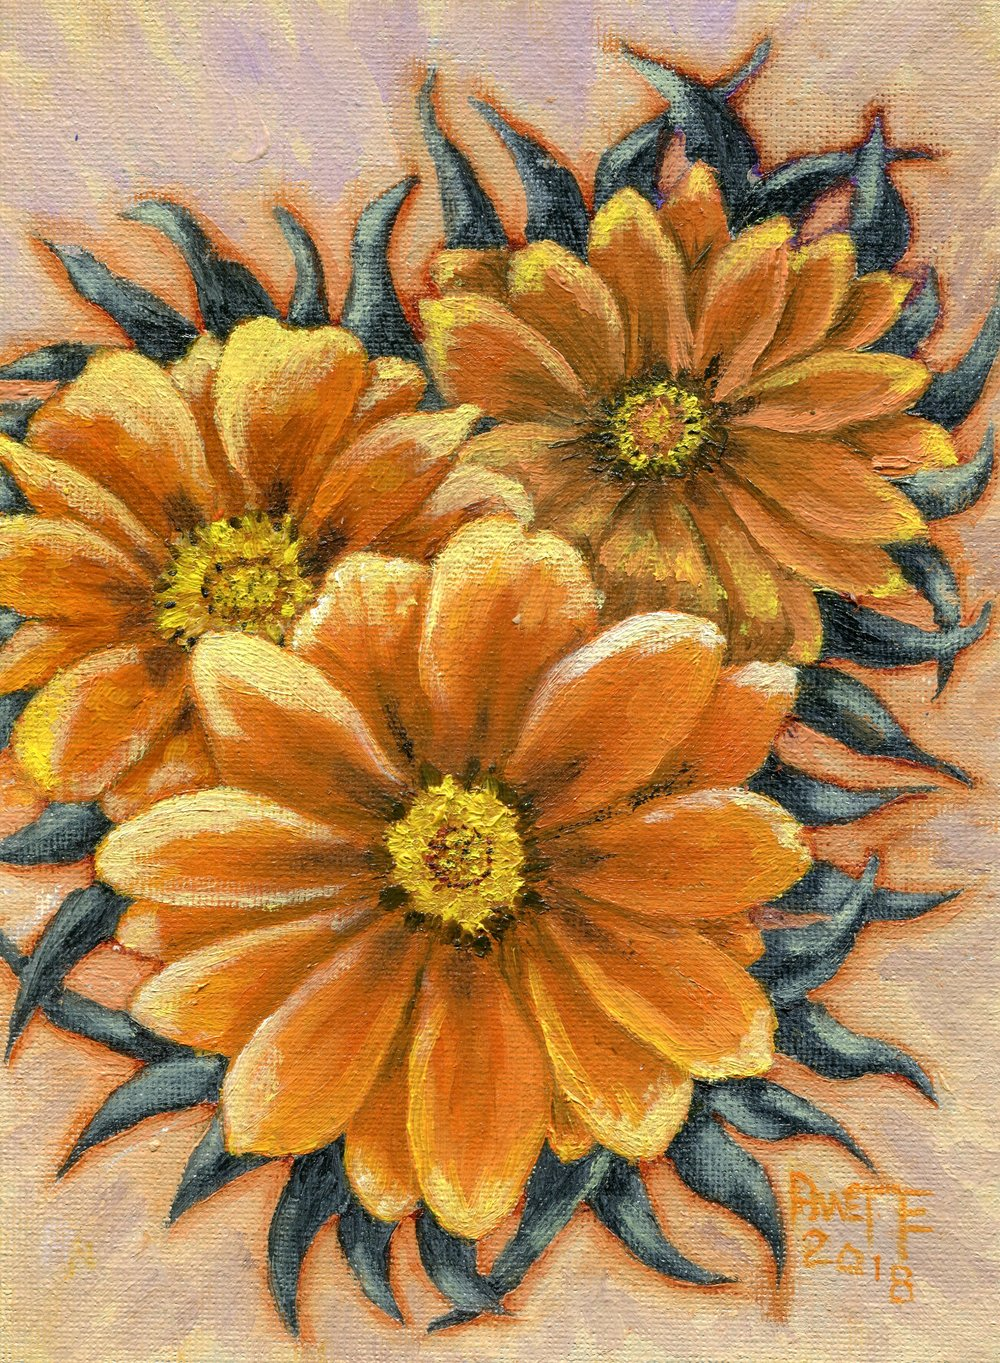 08B  Annette Farland  Gazania with compliments  oil on canvas panel